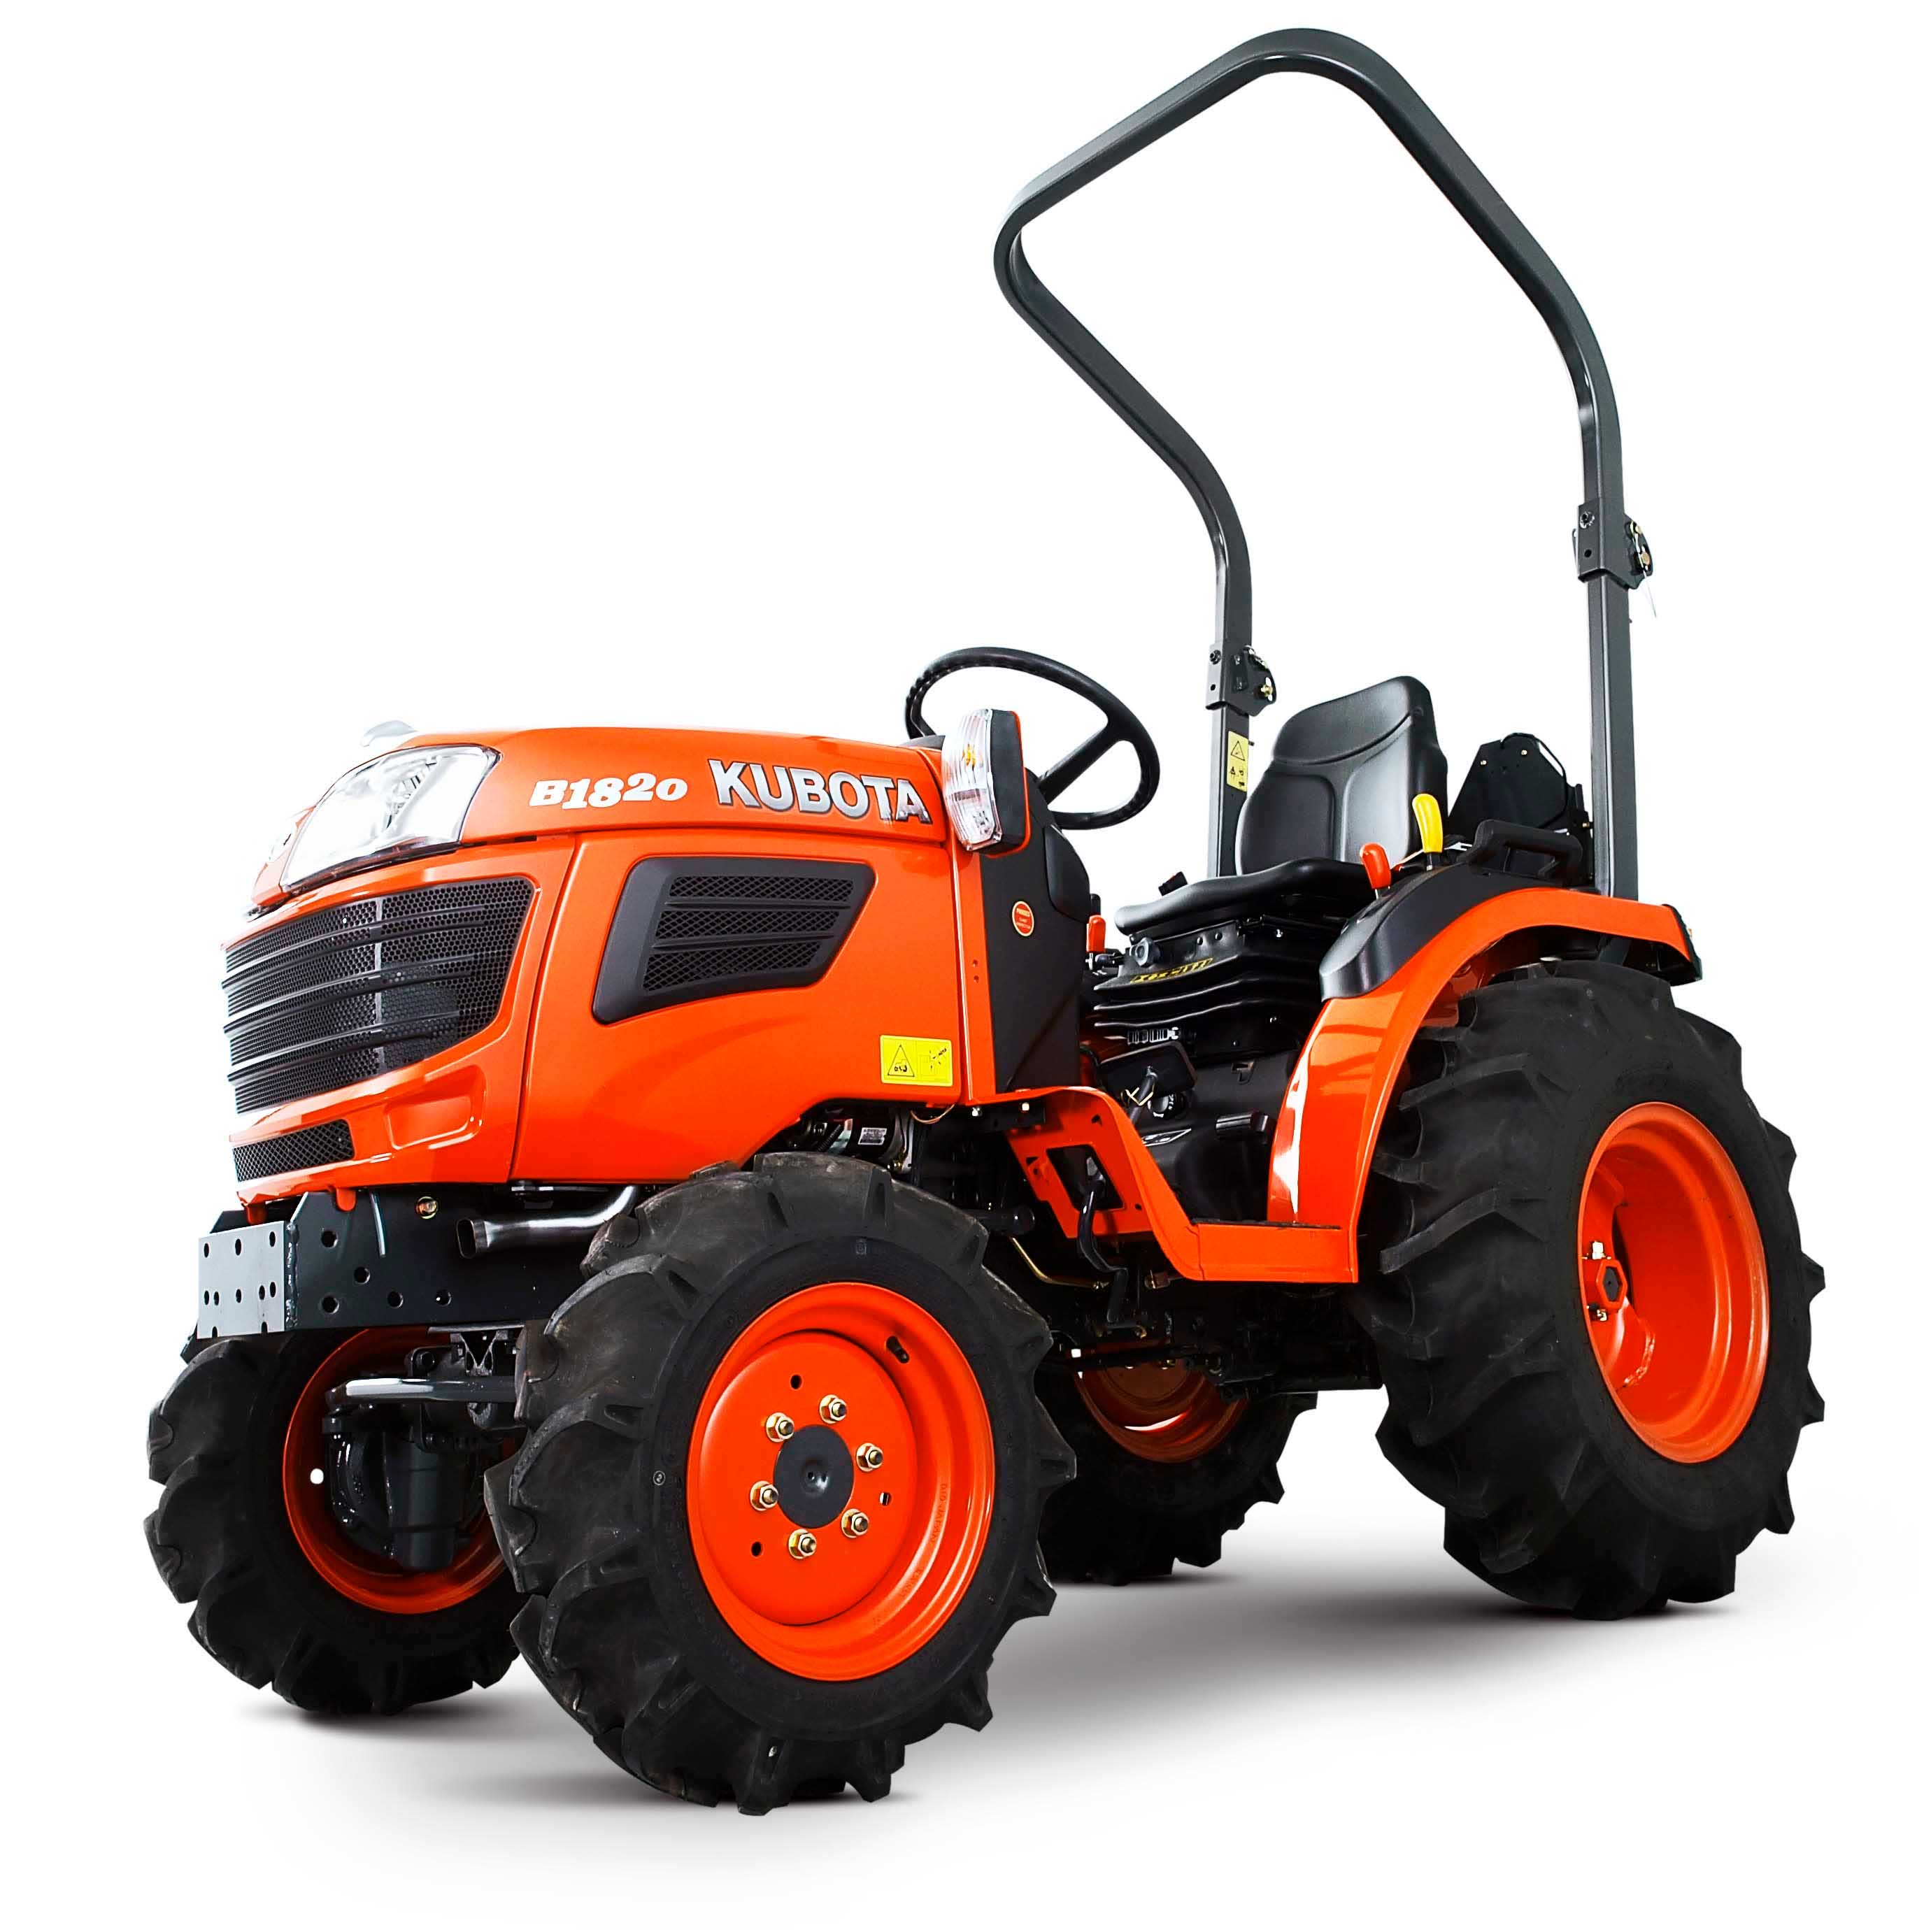 kubota introduces new b20 series compact tractors. Black Bedroom Furniture Sets. Home Design Ideas